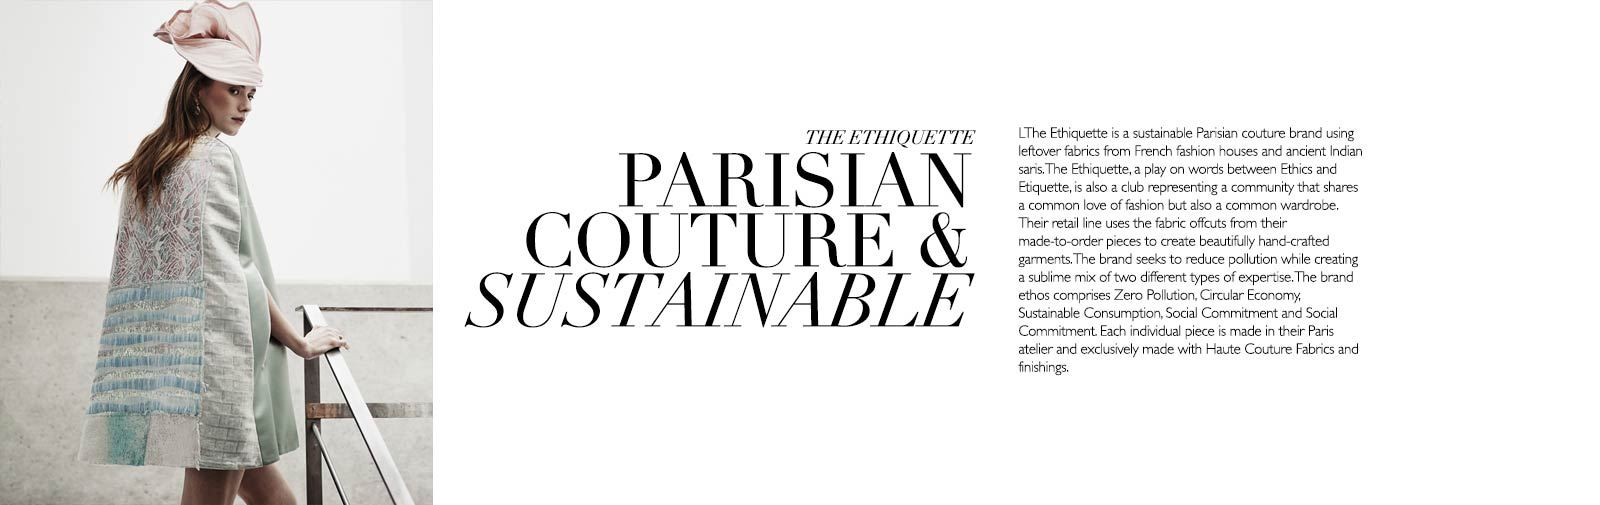 THE ETHIQUETTE - PARISIAN COUTURE & SUSTAINABLE - The Ethiquette is a sustainable Parisian couture brand using leftover fabrics from French fashion houses and ancient Indian saris. The Ethiquette, a play on words between Ethics and Etiquette, is also a club representing a community that shares a common love of fashion but also a common wardrobe. Their retail line uses the fabric offcuts from their made-to-order pieces to create beautifully hand-crafted garments. The brand seeks to reduce pollution while creating a sublime mix of two different types of expertise. The brand ethos comprises Zero Pollution, Circular Economy, Sustainable Consumption, Social Commitment and Social Commitment. Each individual piece is made in their Paris atelier and exclusively made with Haute Couture Fabrics and finishings.